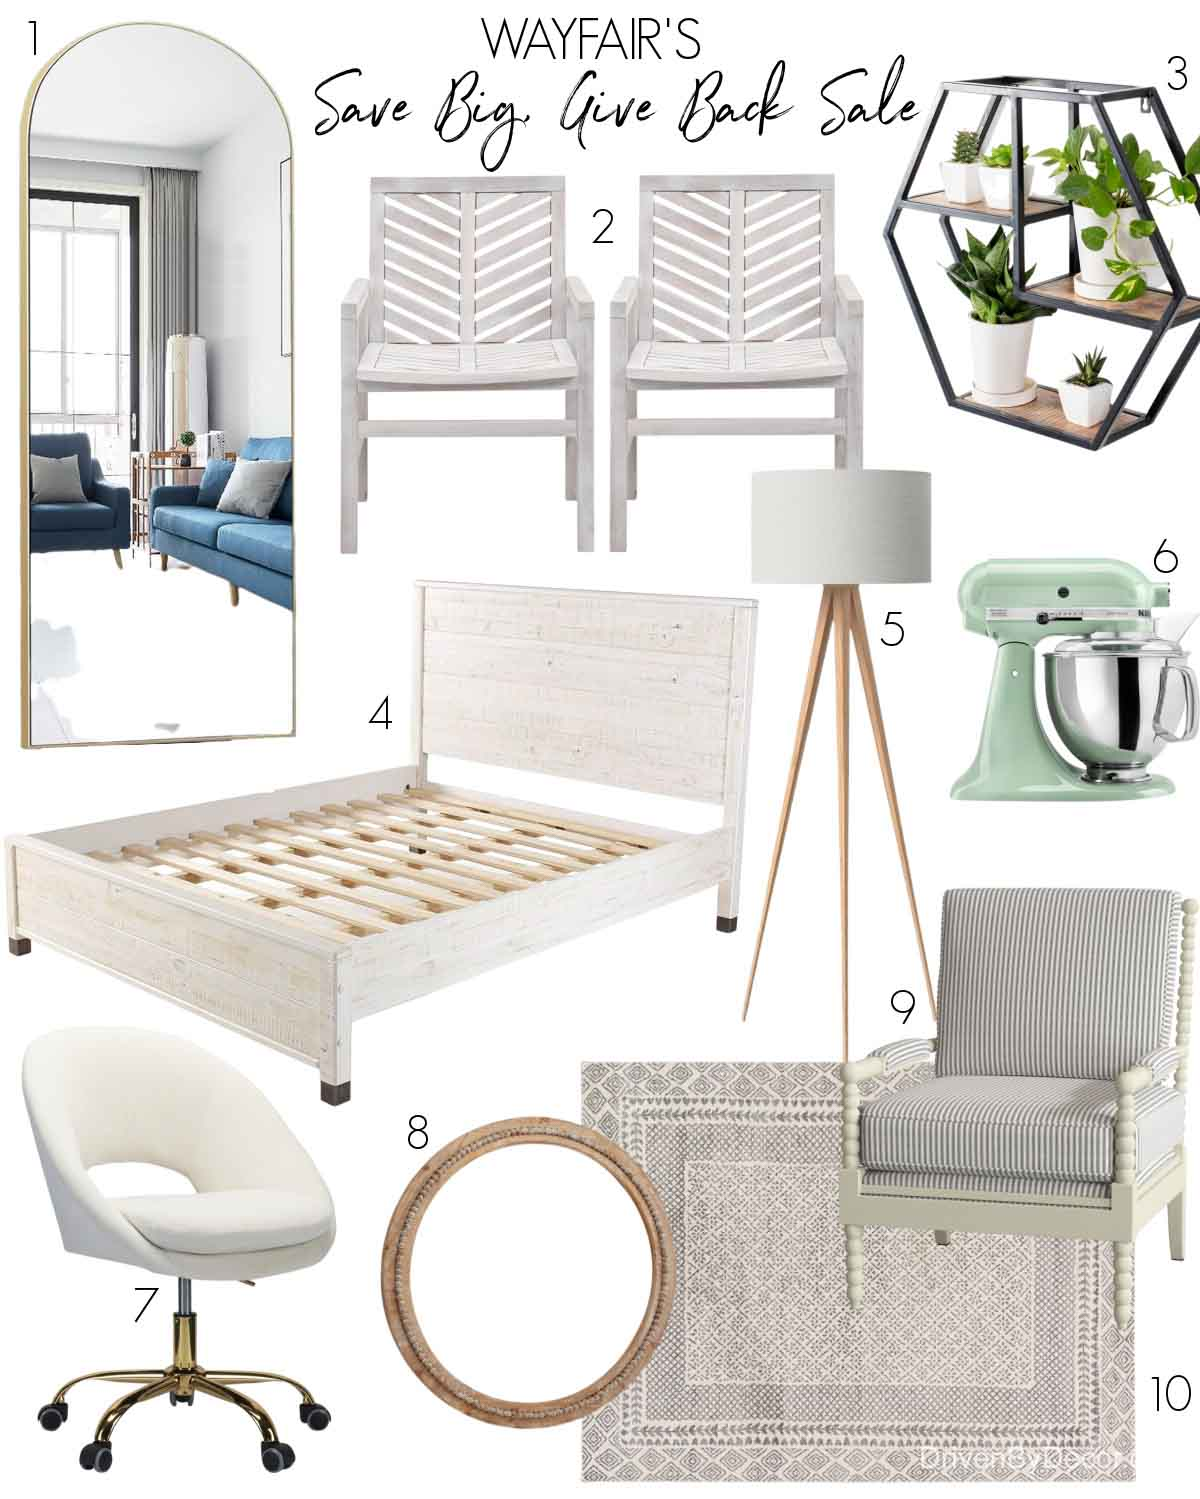 Favorites from Wayfair's Save Big, Give Back sale!